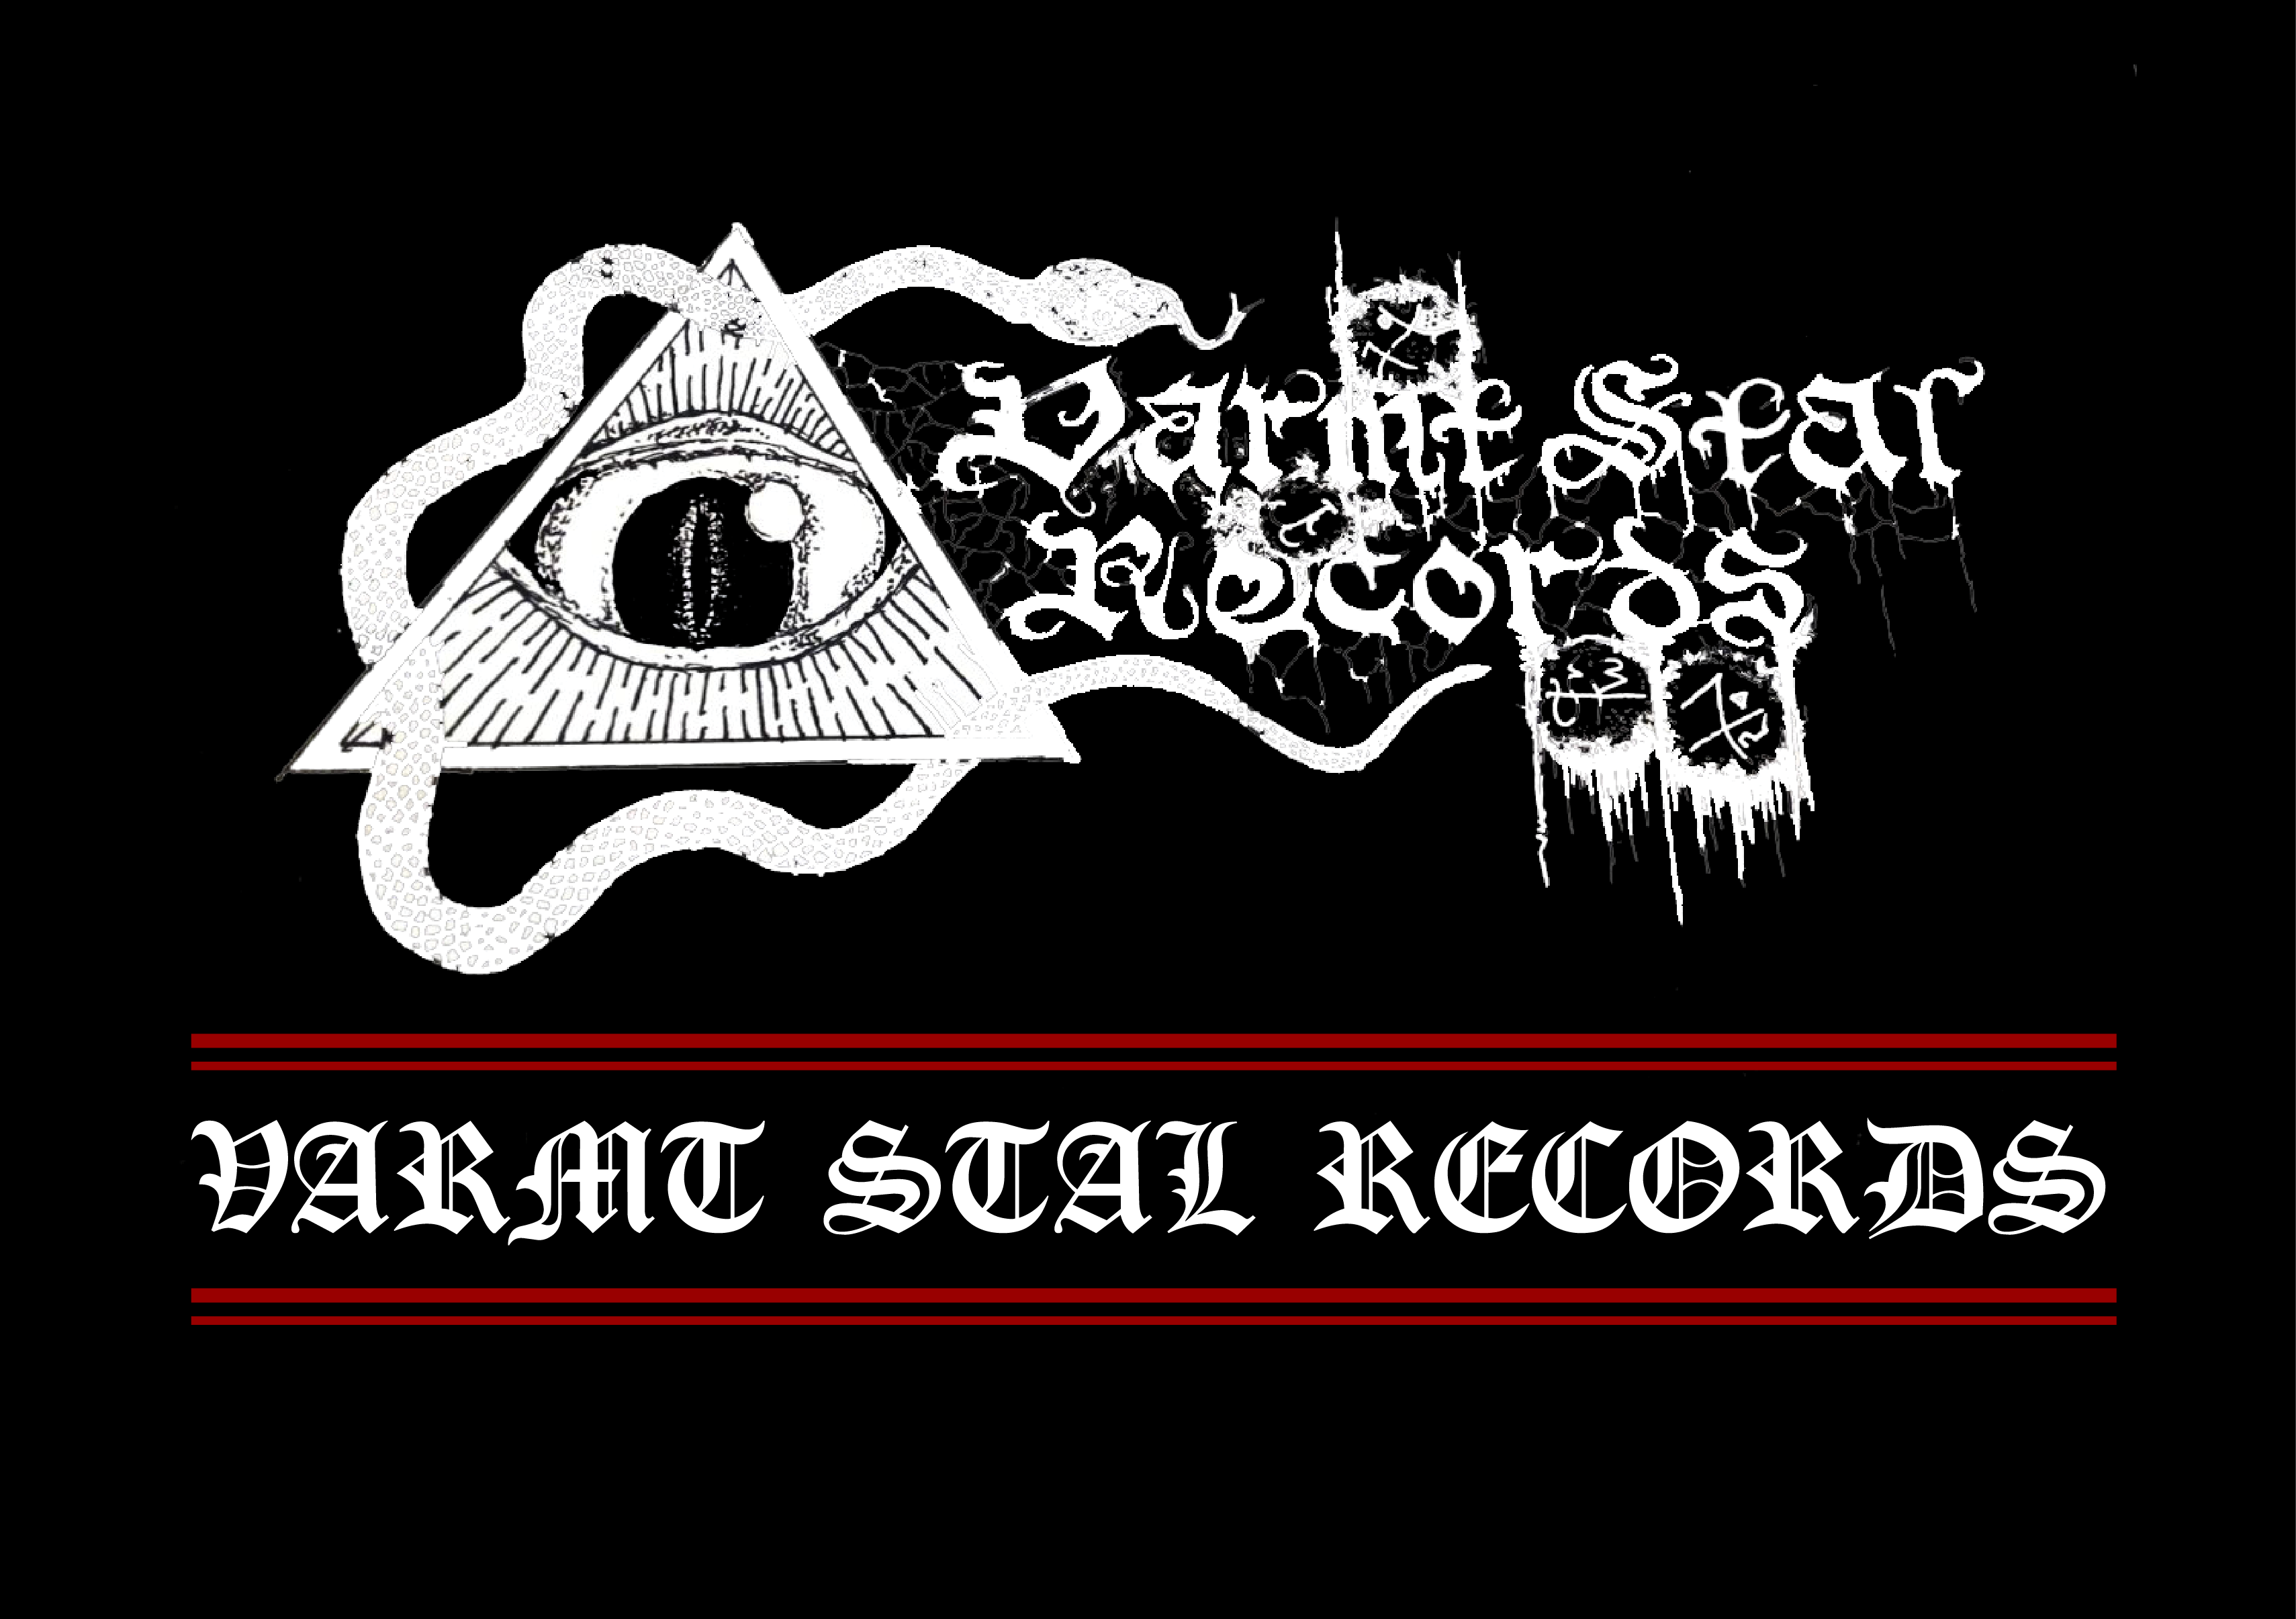 Varmt Stal Records